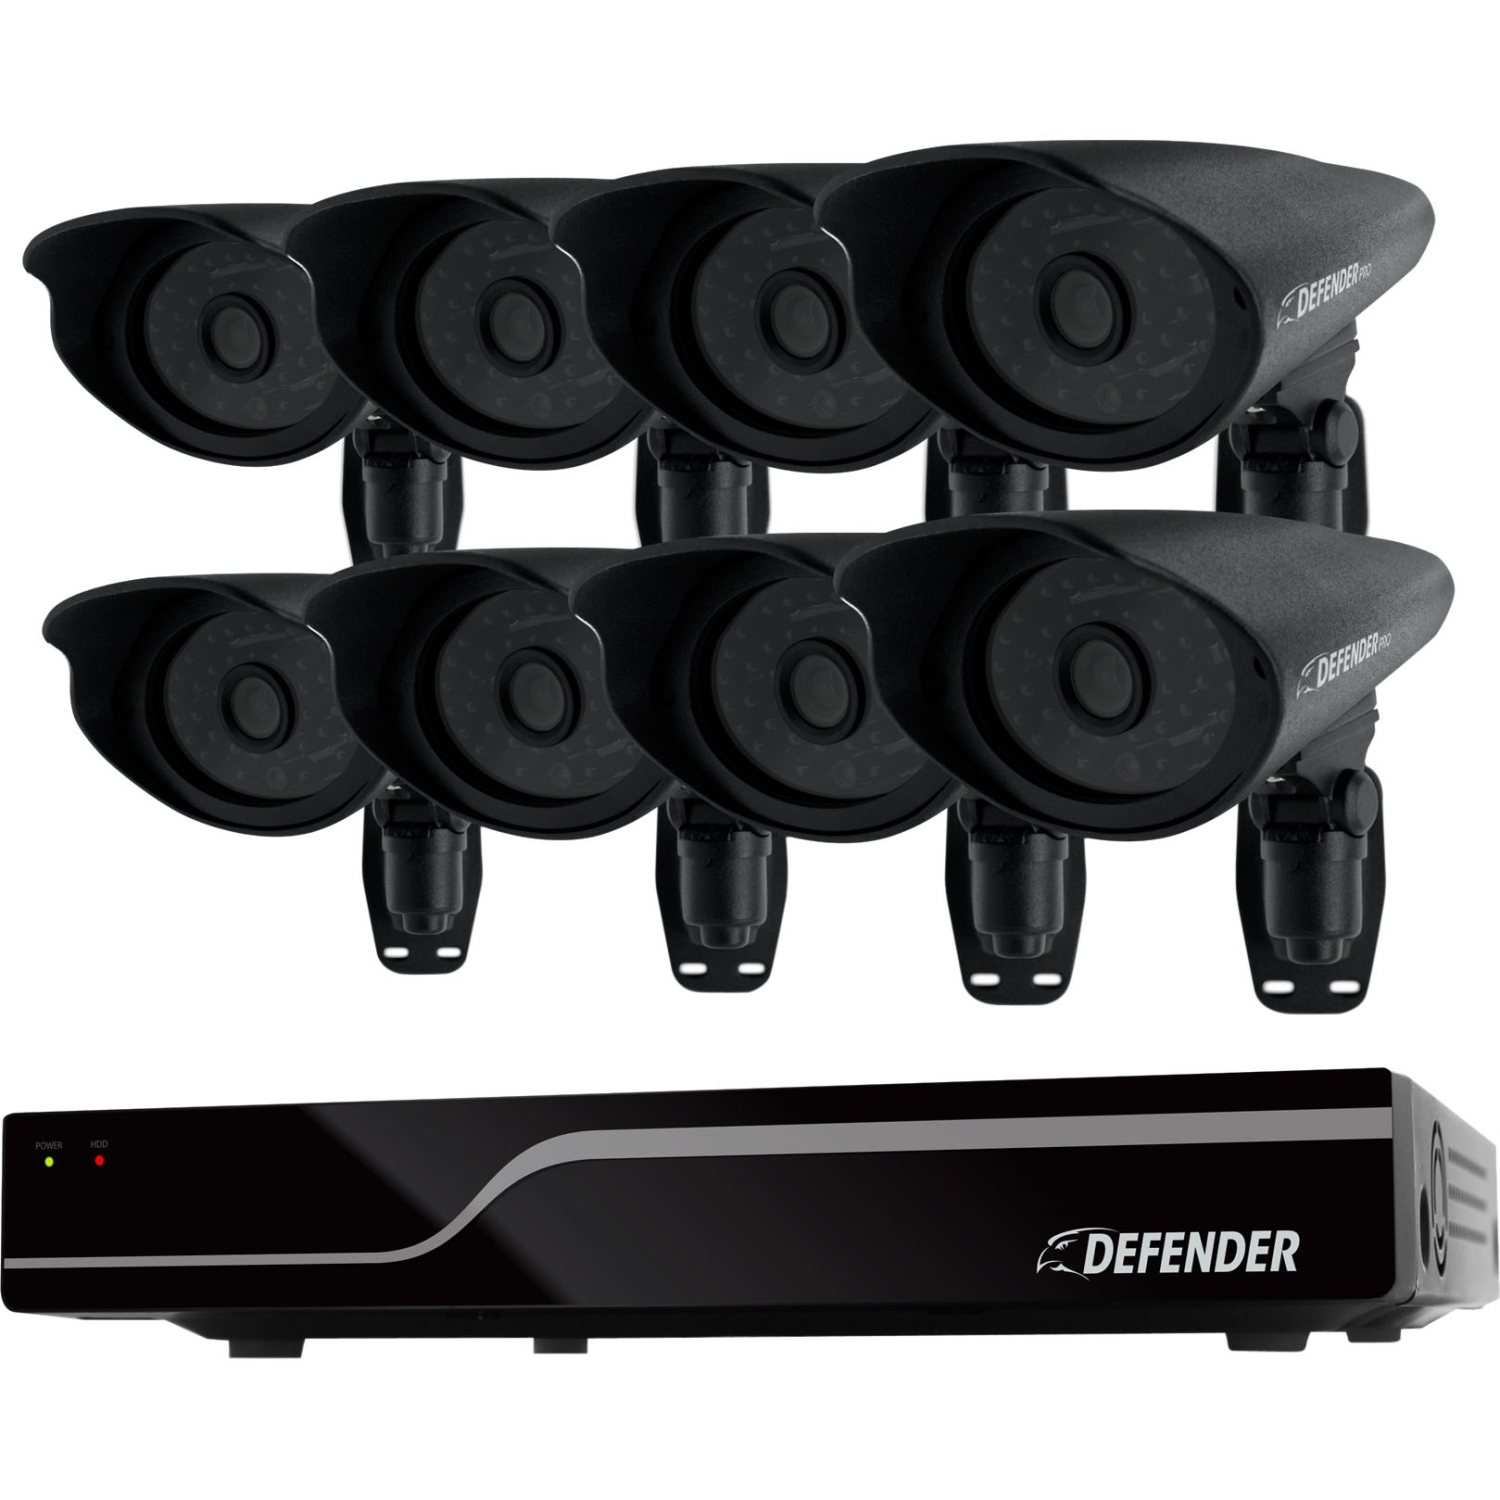 DEFENDER PRO Sentinel 8CH Smart Security DVR with 8 Hi-Res Outdoor Security Cameras